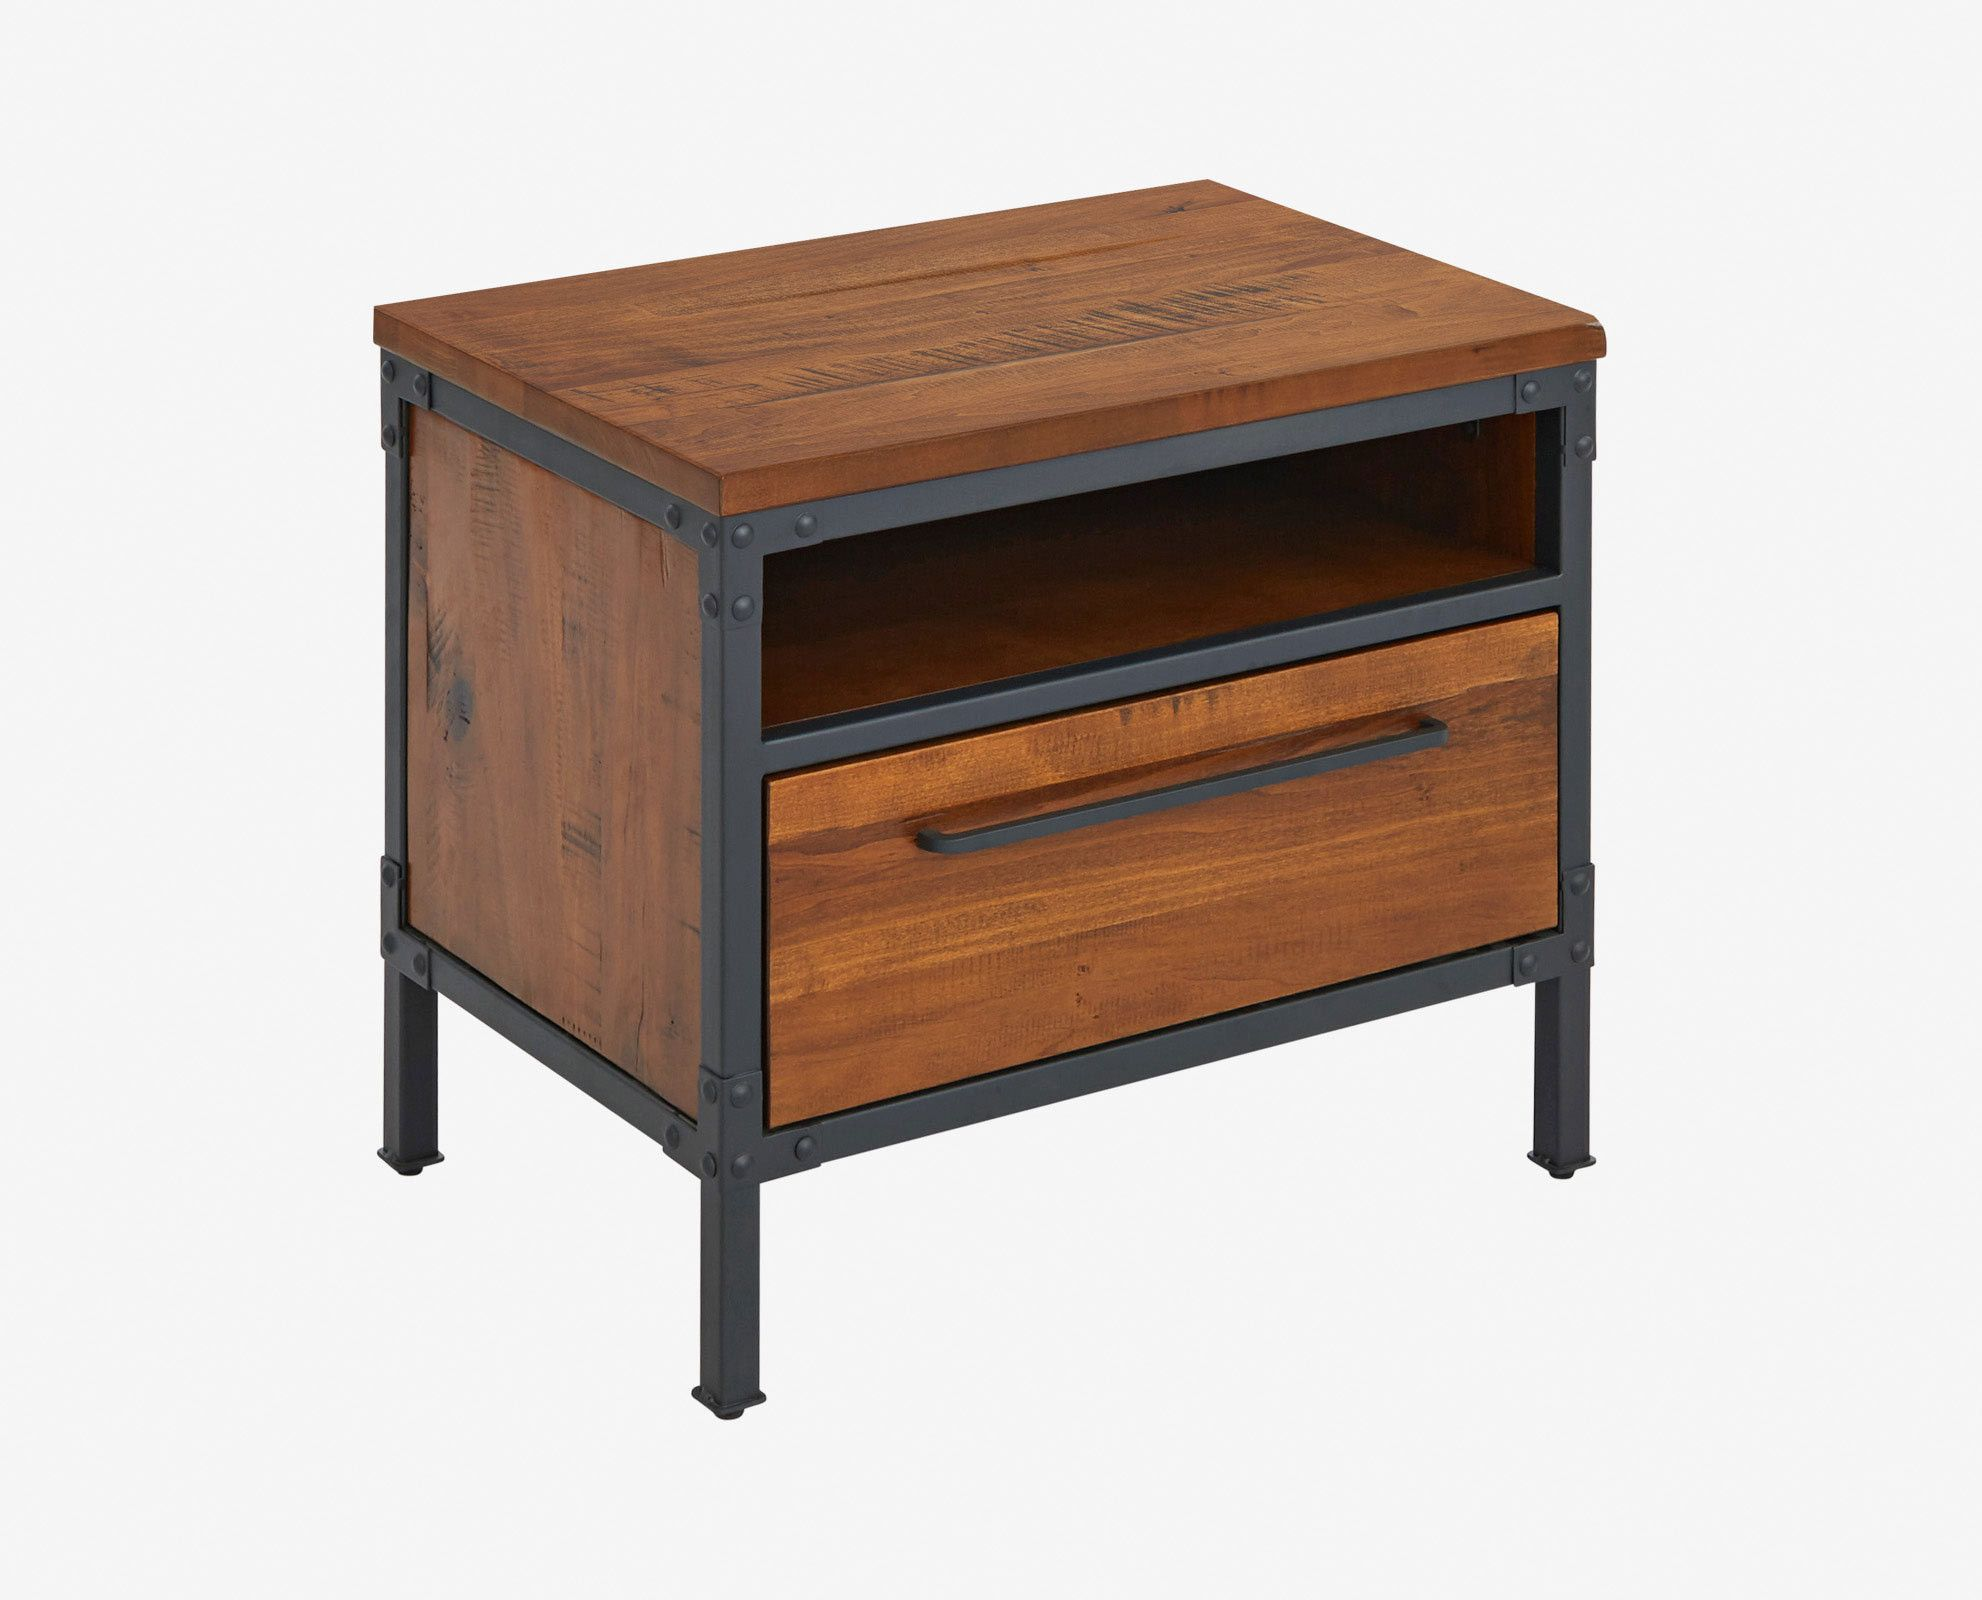 insigna nightstand bedroom furniture end table dimensions tiny dog cage miami dolphins yeti cooler grey finish coffee garden box yellow bedside lamps queen anne dining chairs